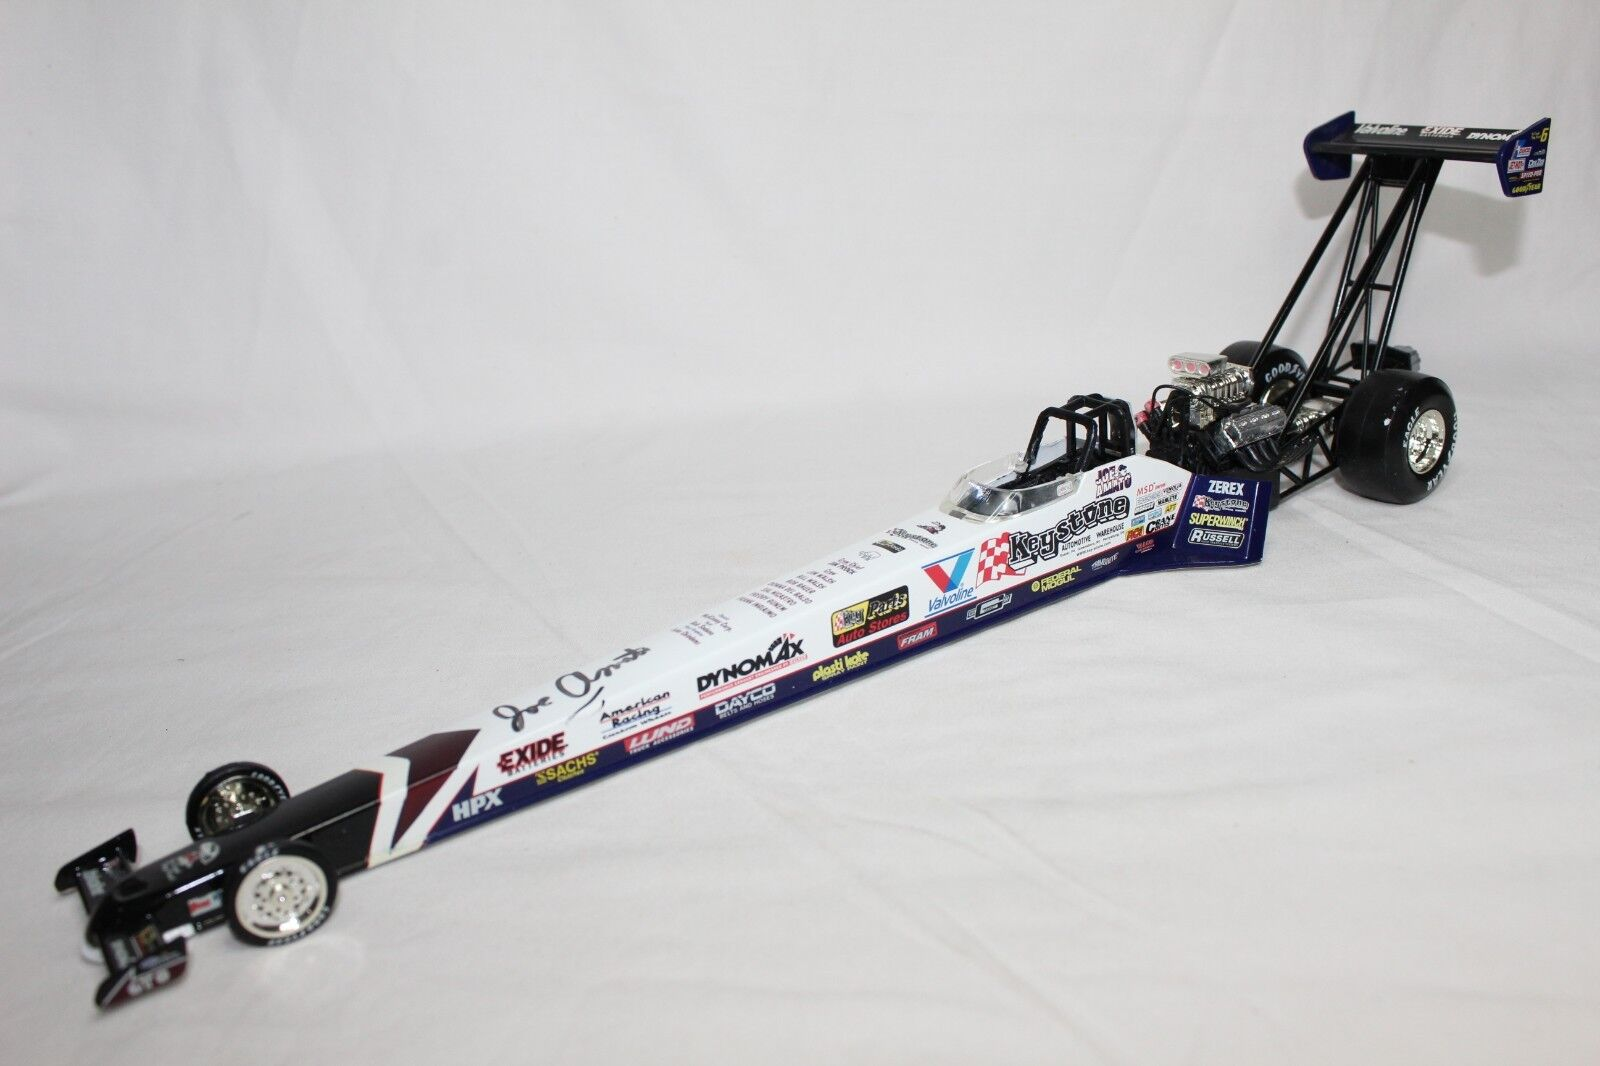 Action 1:24 Scale NHRA JOE AMATO KEYSTONE 1997 TOP FUEL DRAGSTER - AUTOGRAPHED